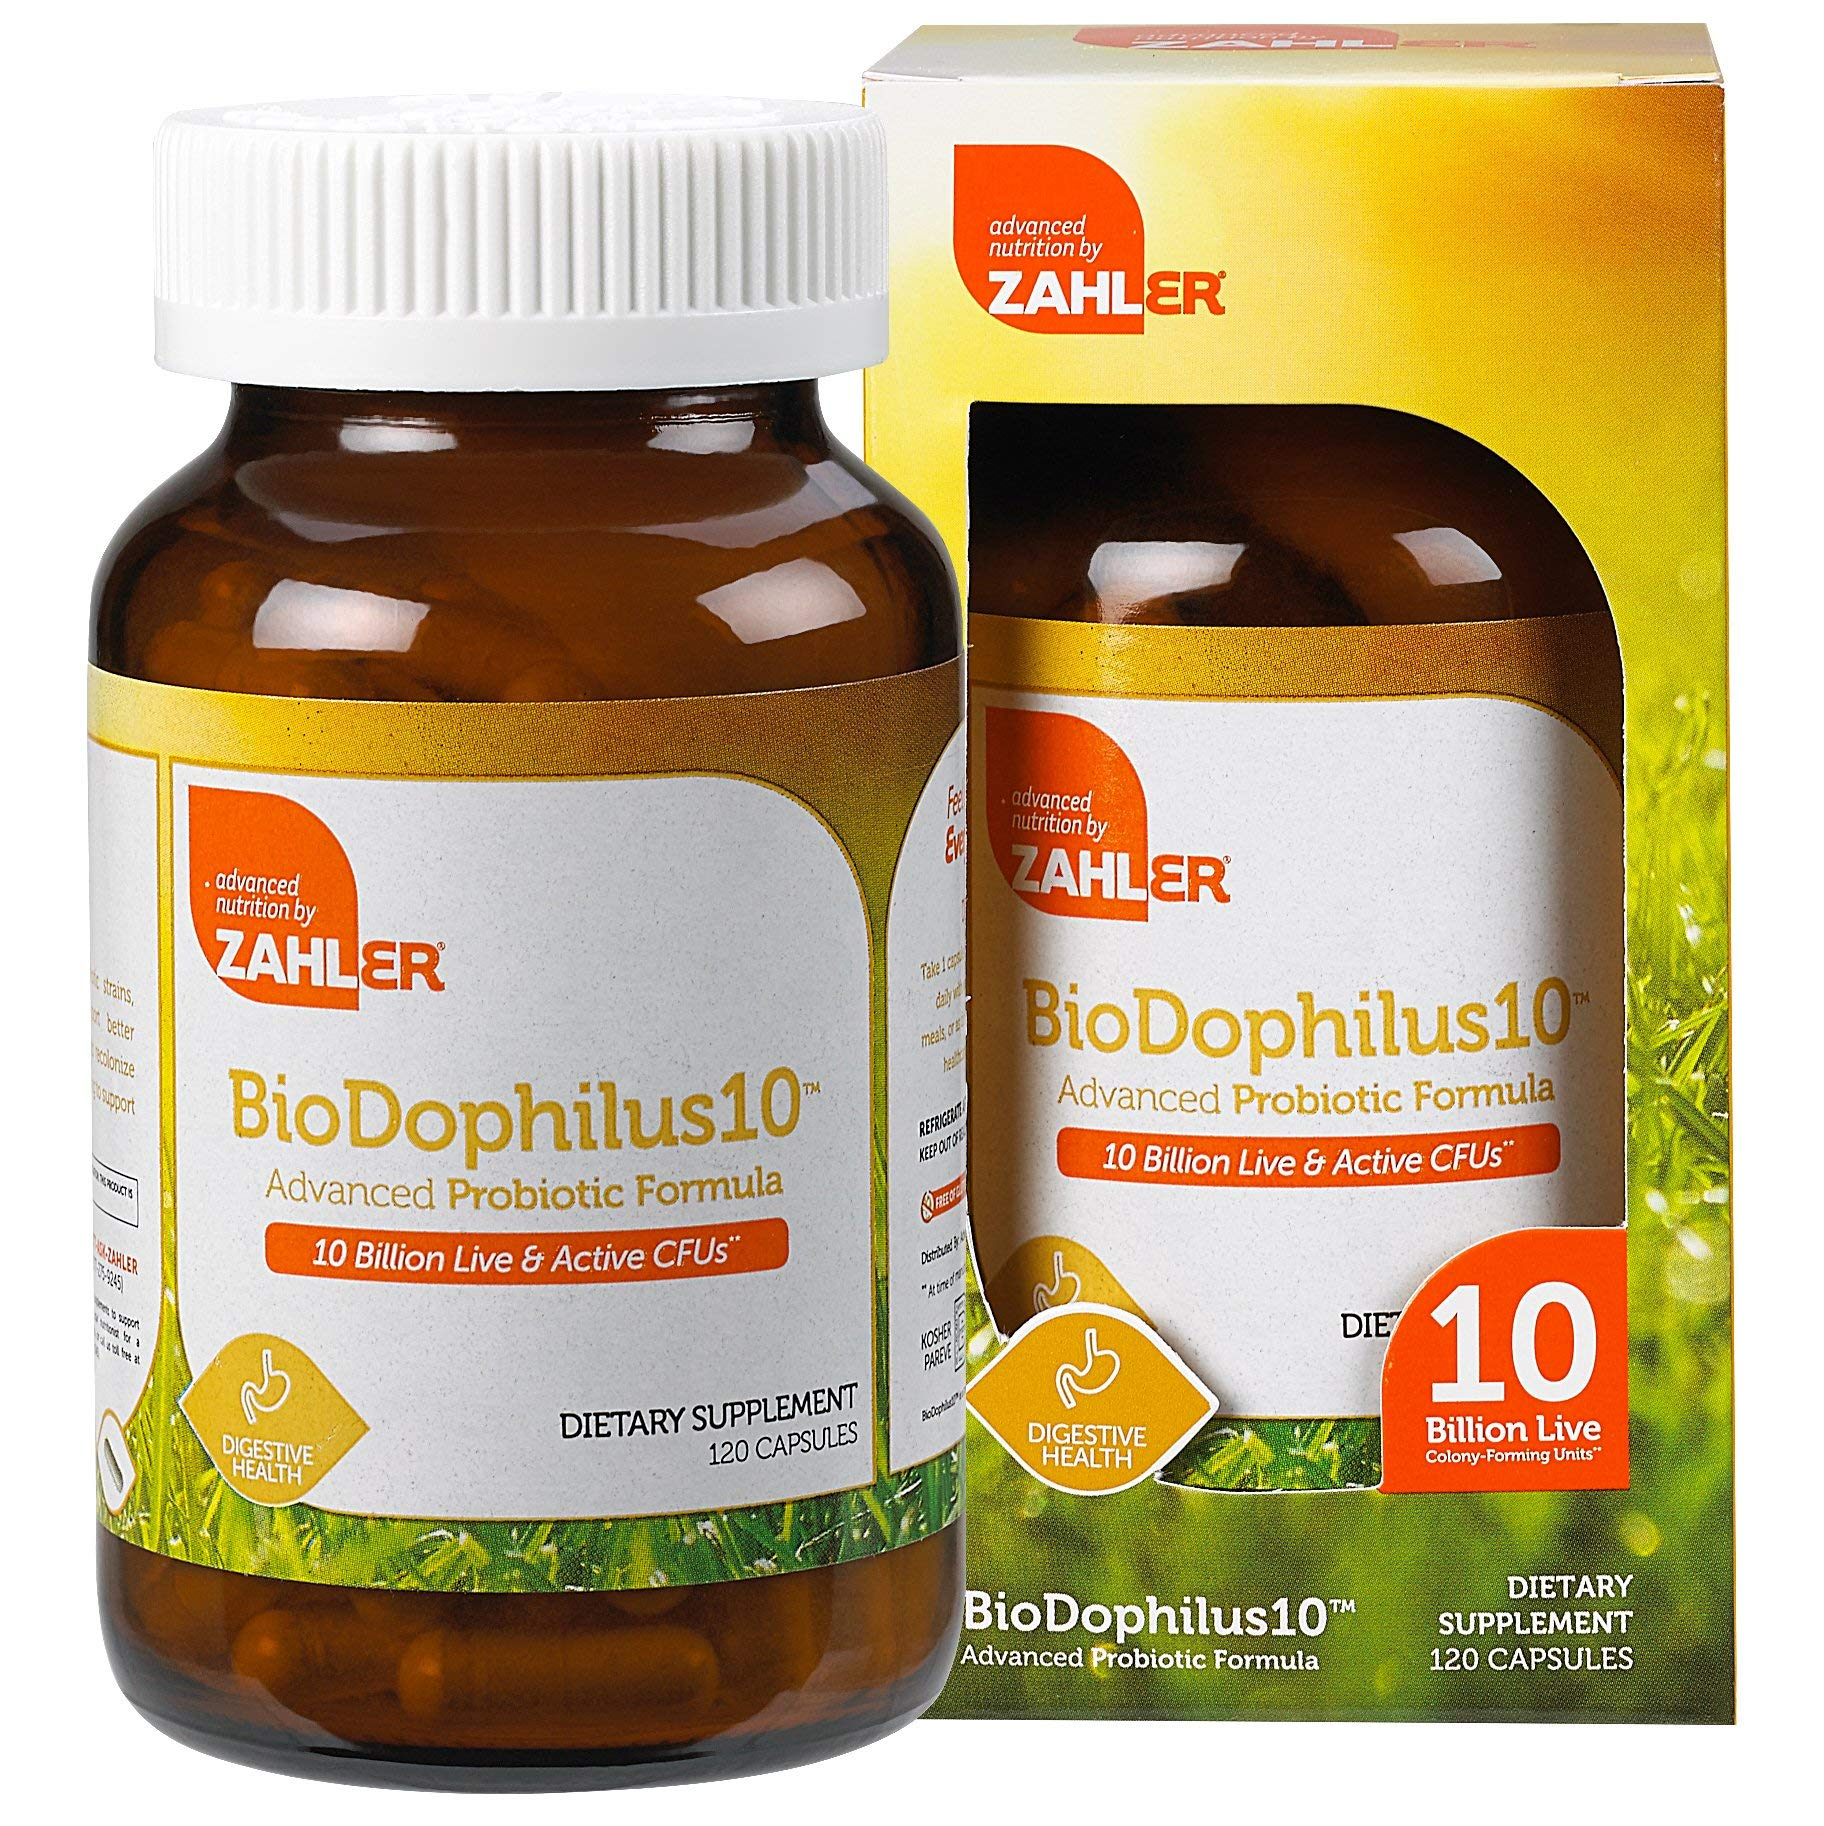 Zahler Biodophilus10, All Natural Advanced Probiotic Acidophilus Supplement, Promotes Digestive Health, 10 Billion Live Cultures and Intestinal Flora Per Serving, Certified Kosher,120 Capsules by Zahler